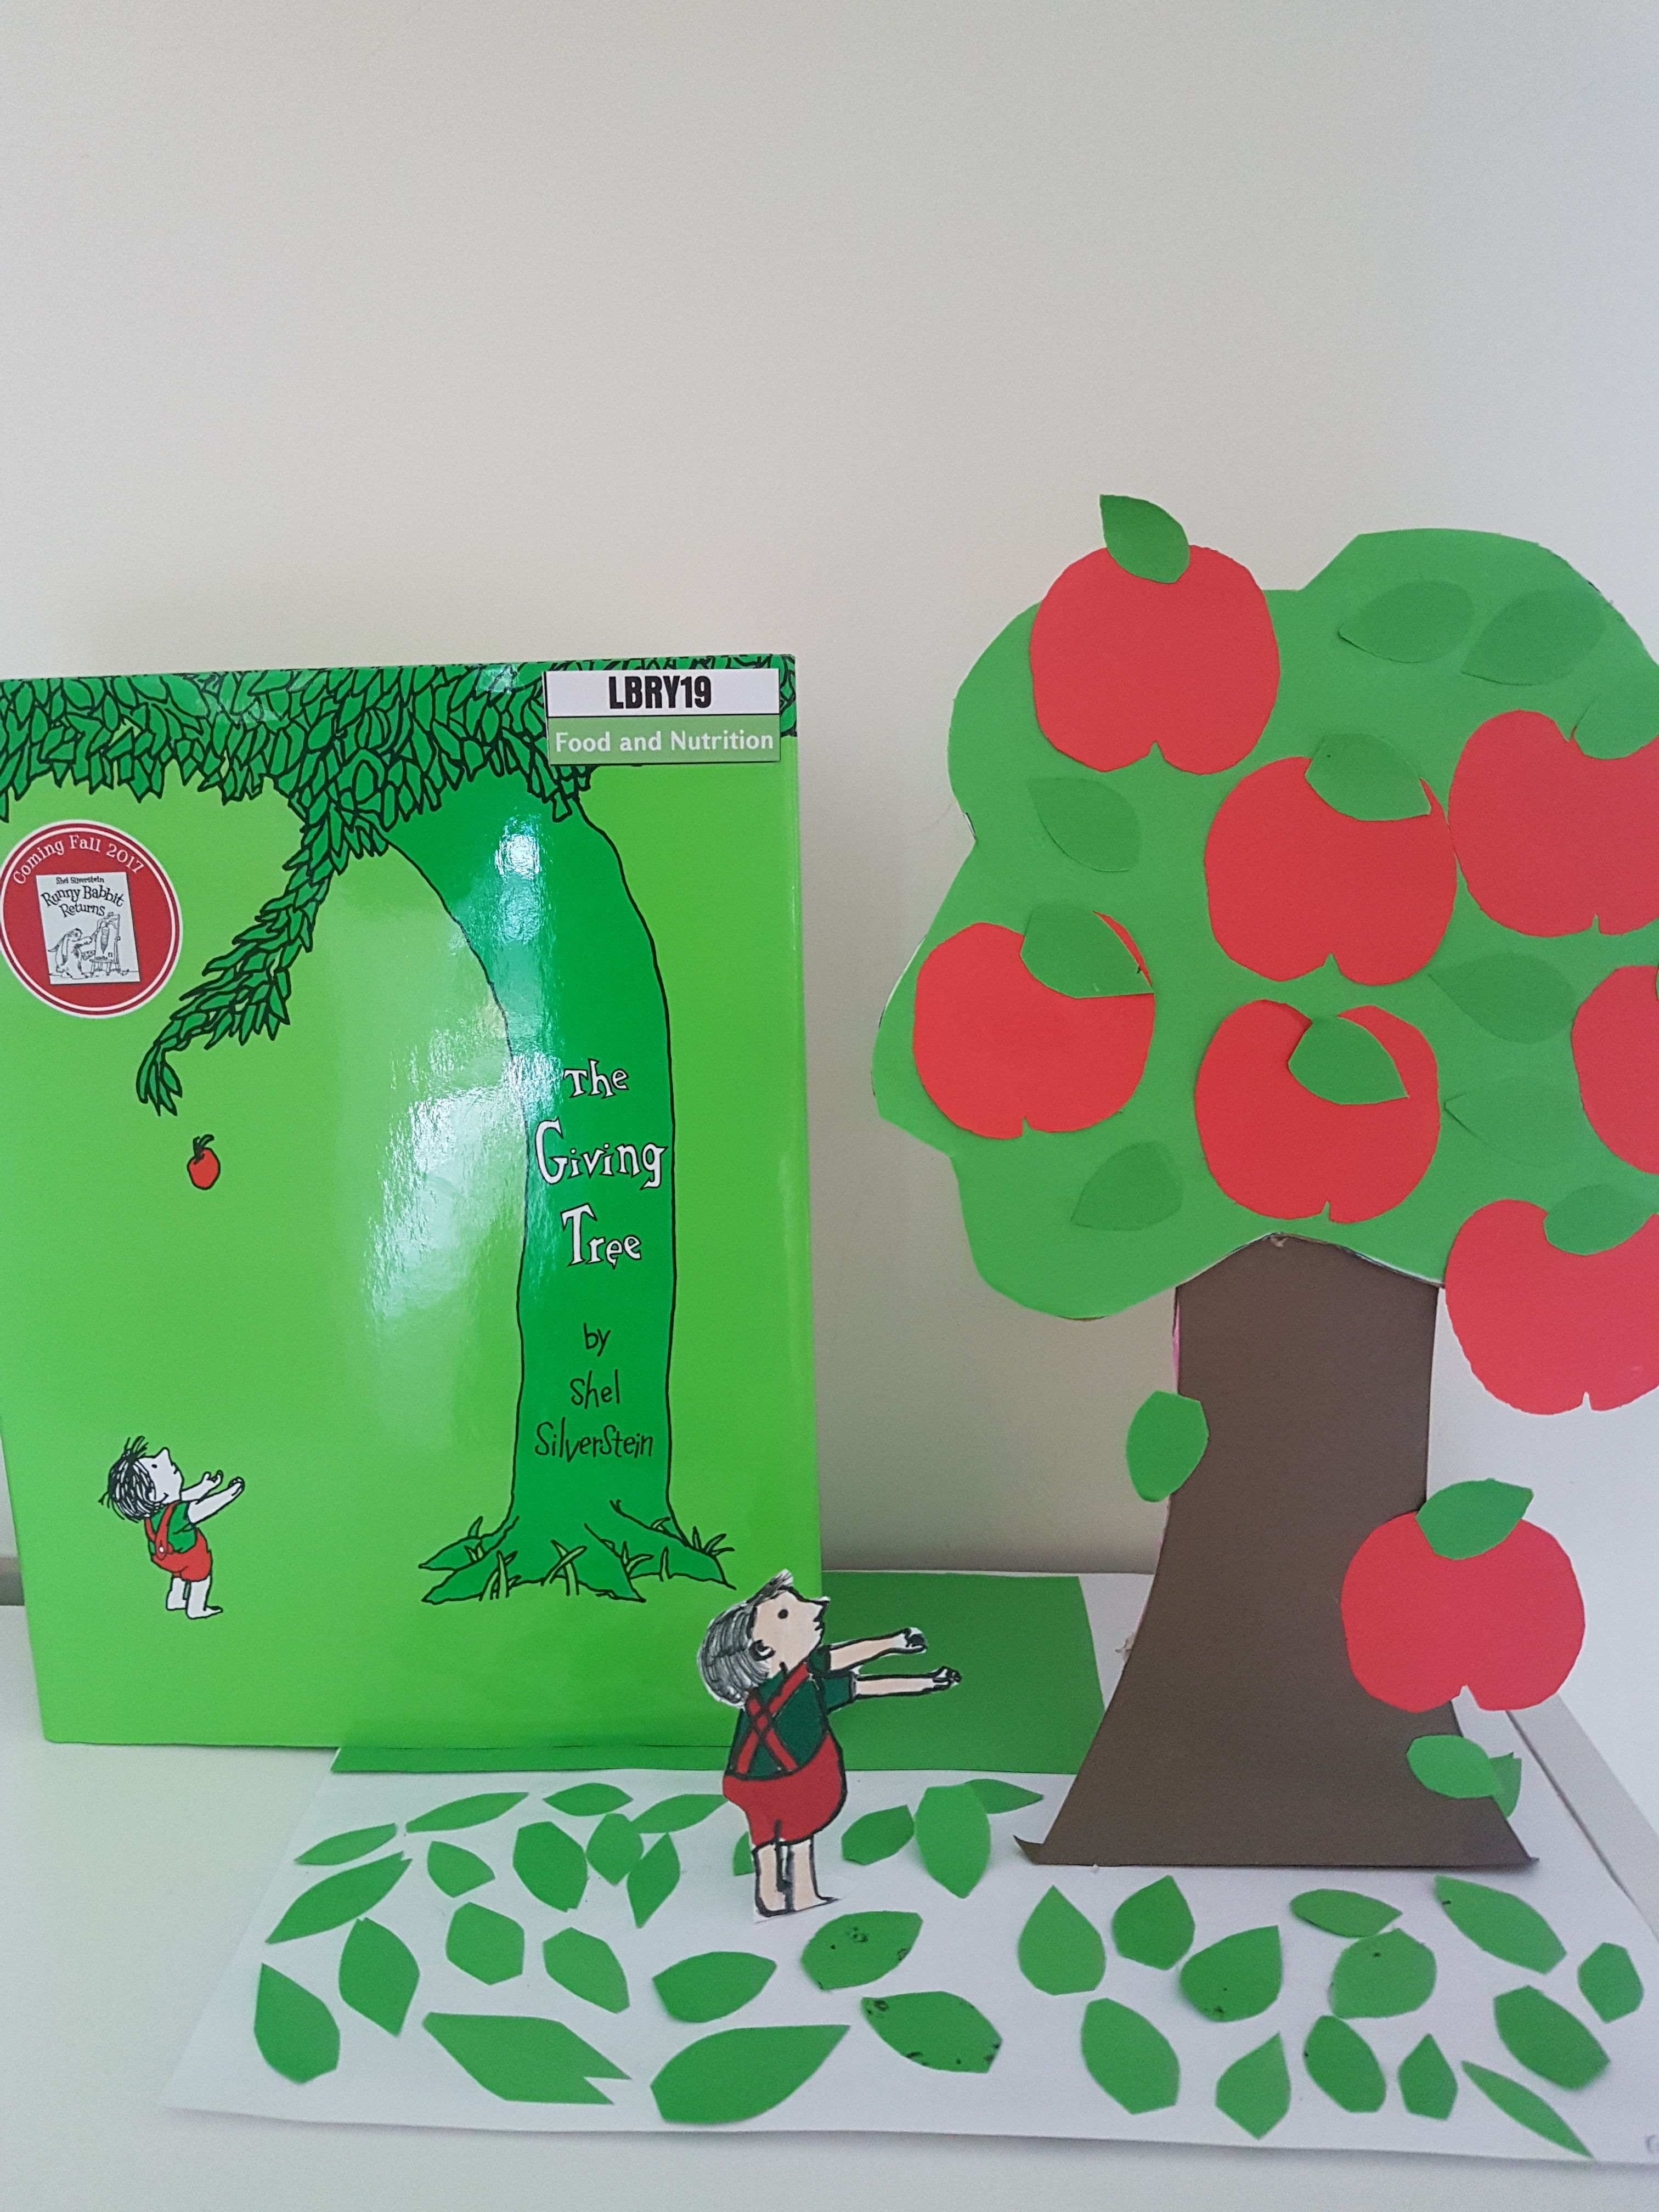 Group Craft Project Based On The Book The Giving Tree